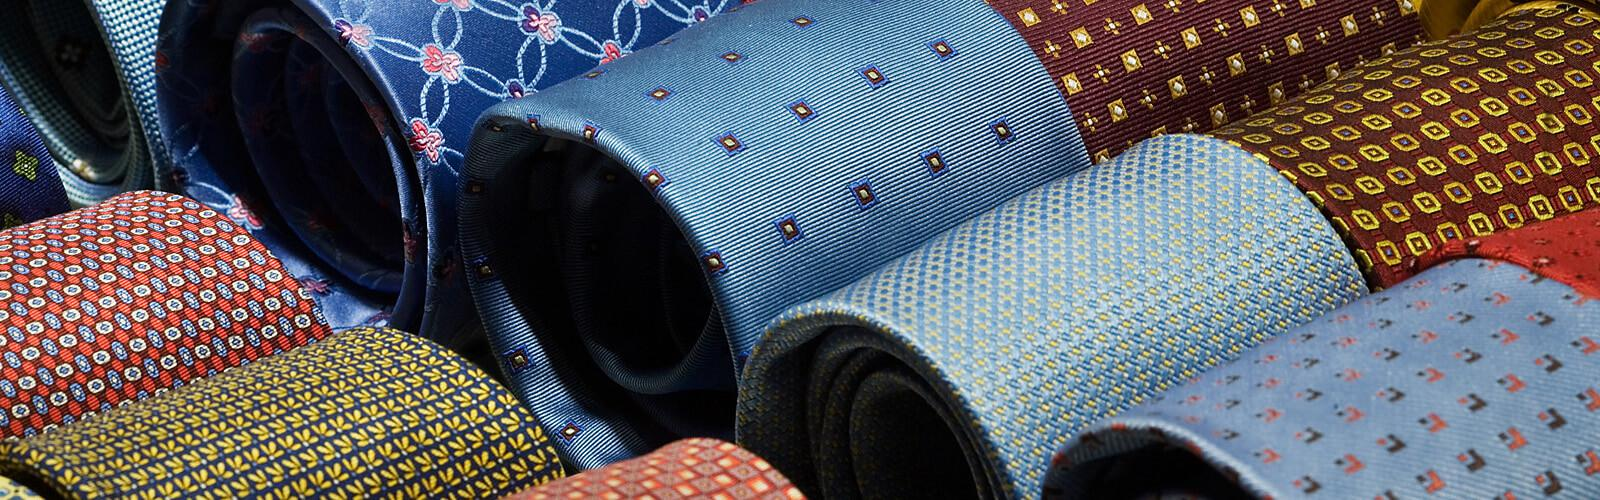 Neckwear and ties made to order - Contact Us fror a Free Quote